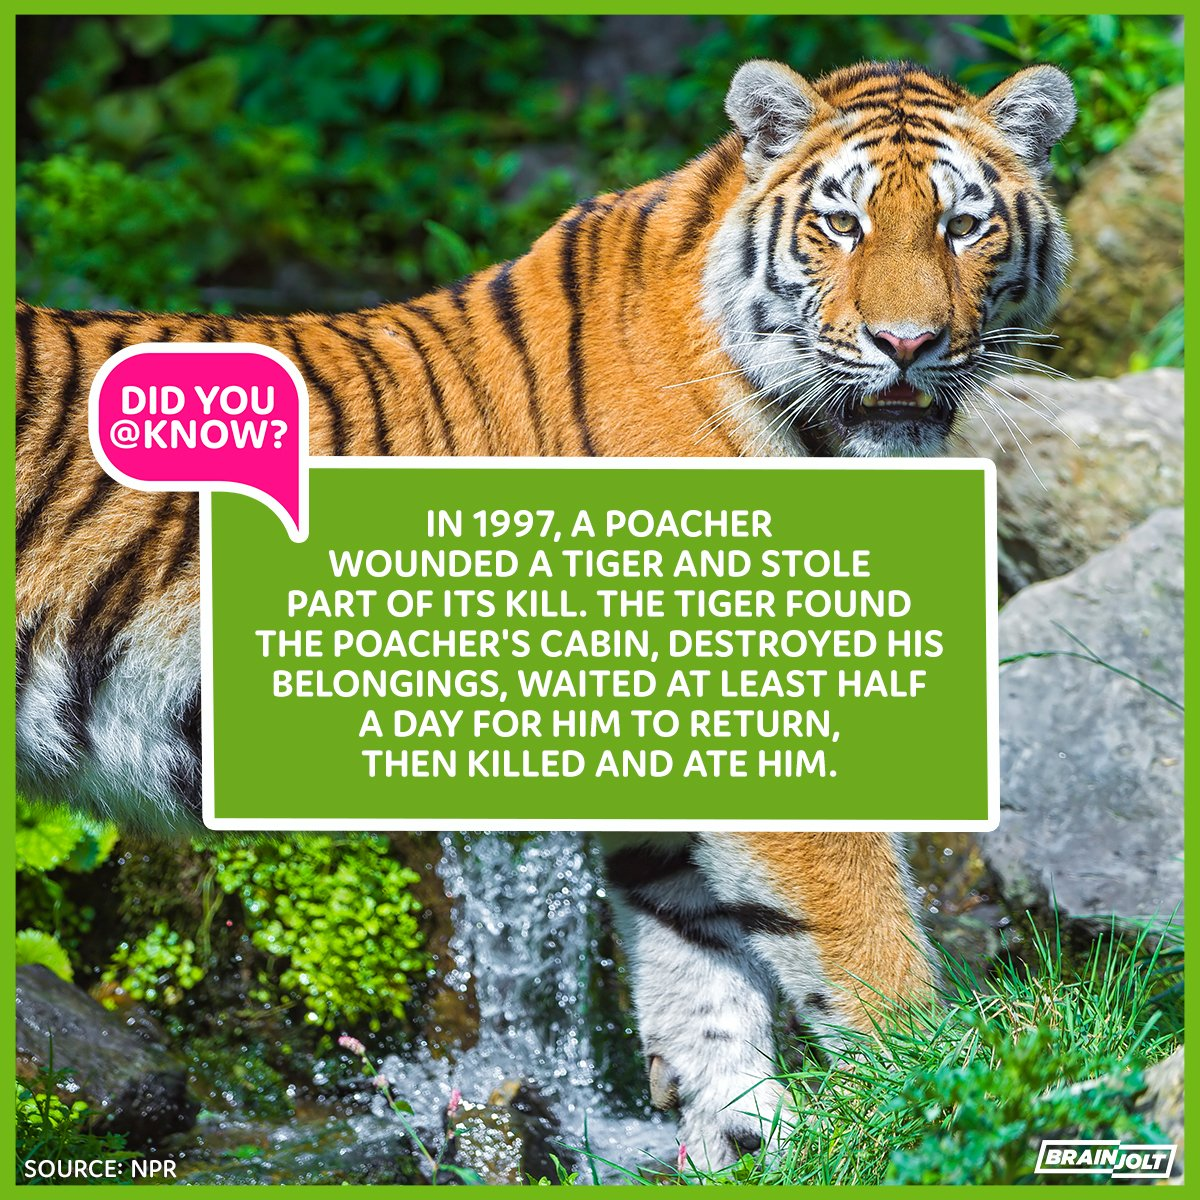 Did you know about #tigers? More about tigers: https://t.co/D6MplrLblb https://t.co/jqd4ozaXbf